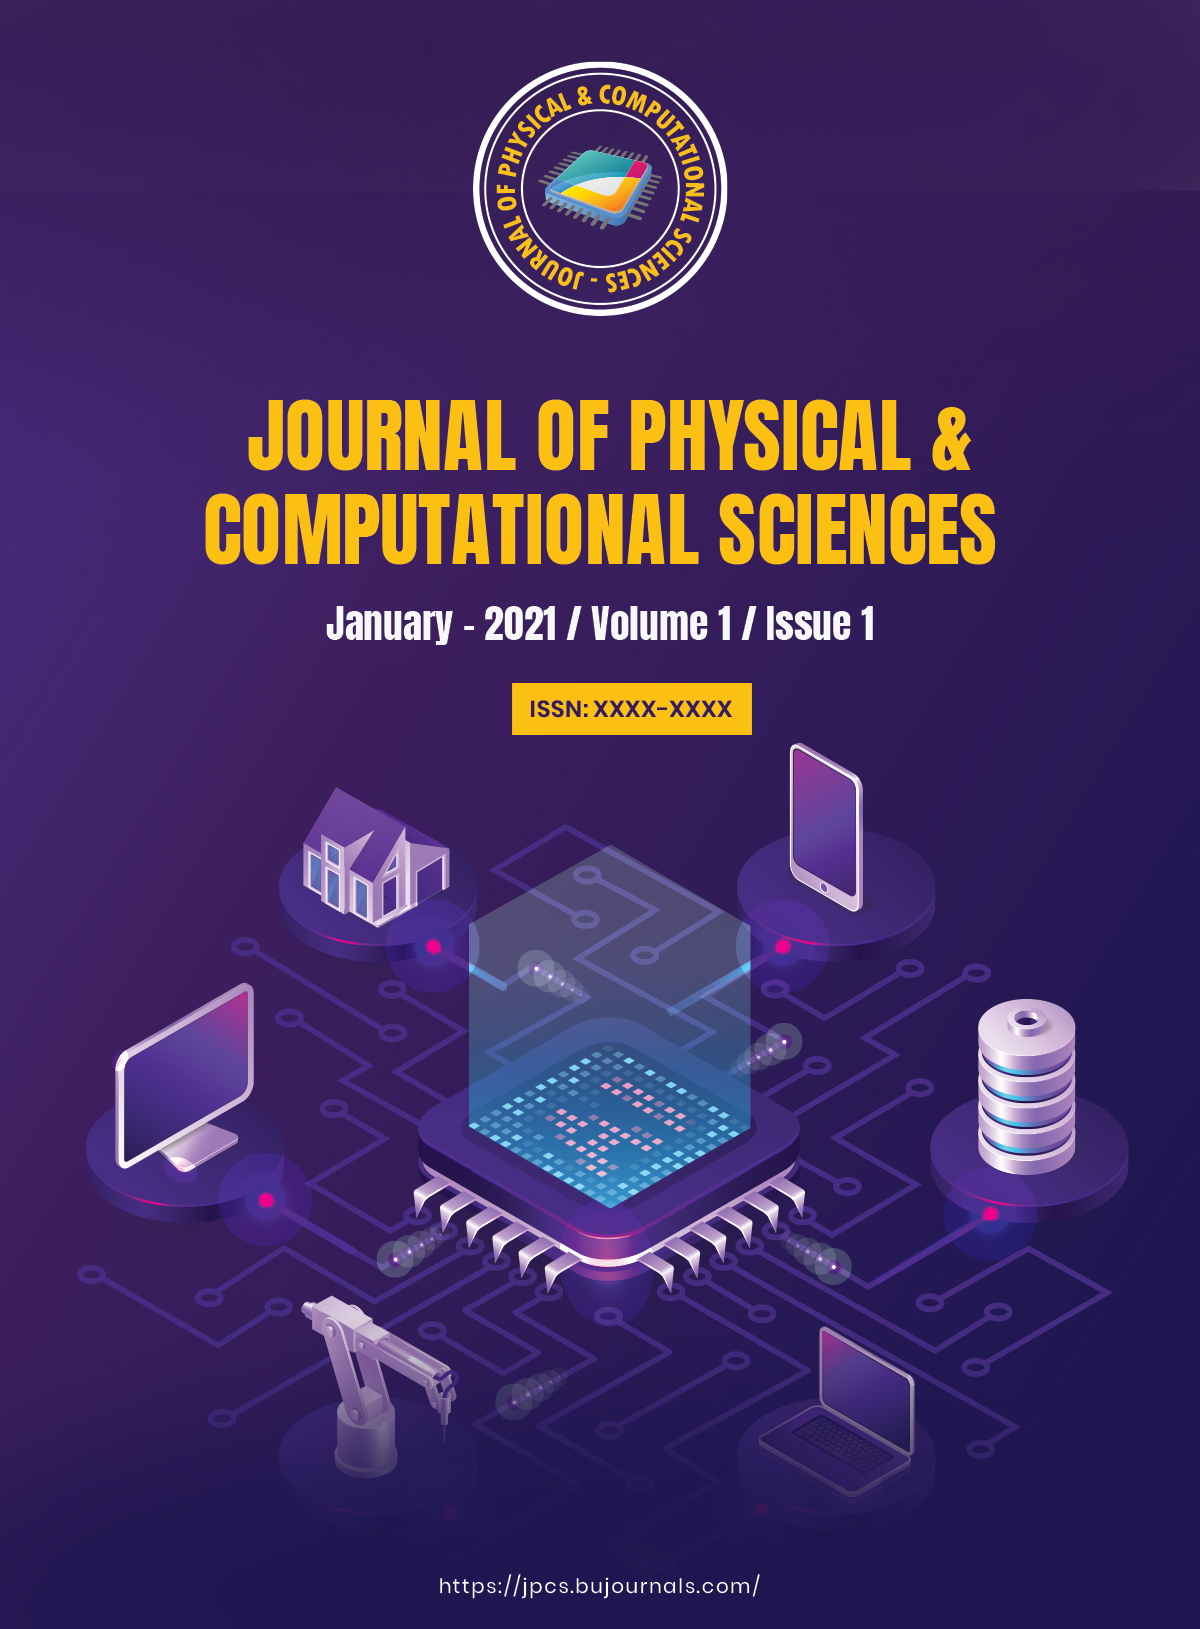 Journal of Physical & Computational Sciences